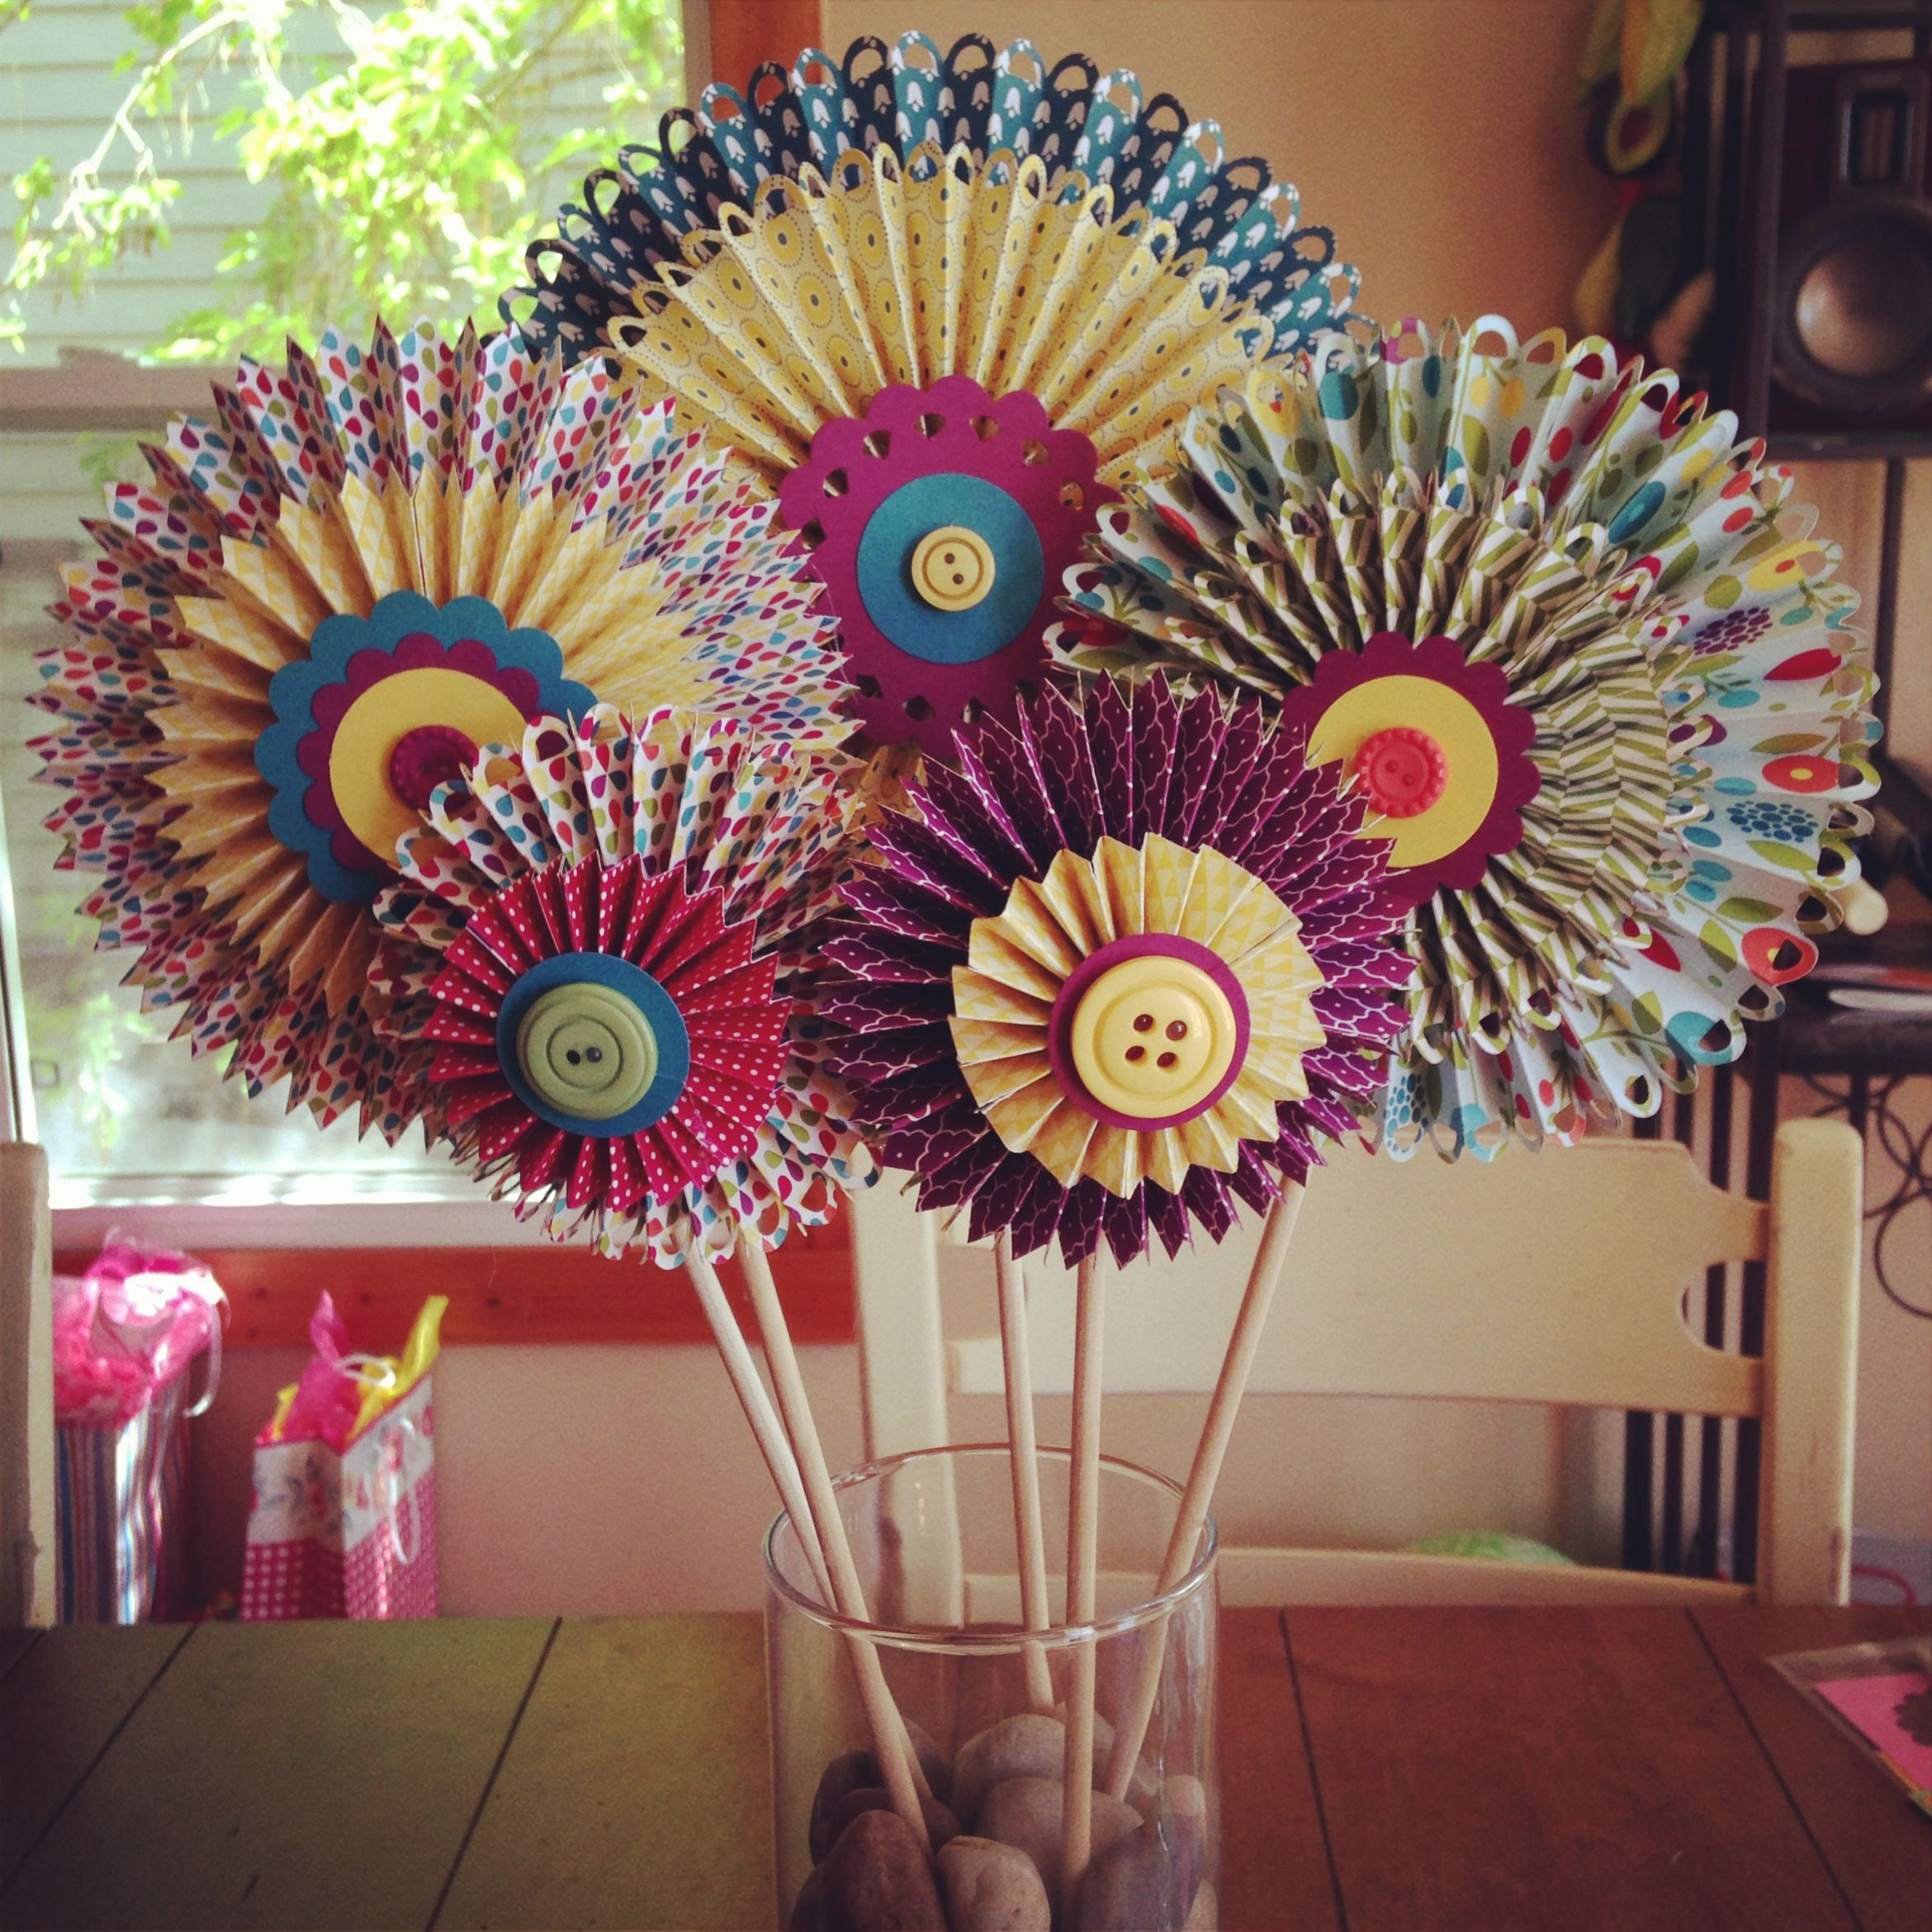 34+ Cool craft ideas with paper ideas in 2021